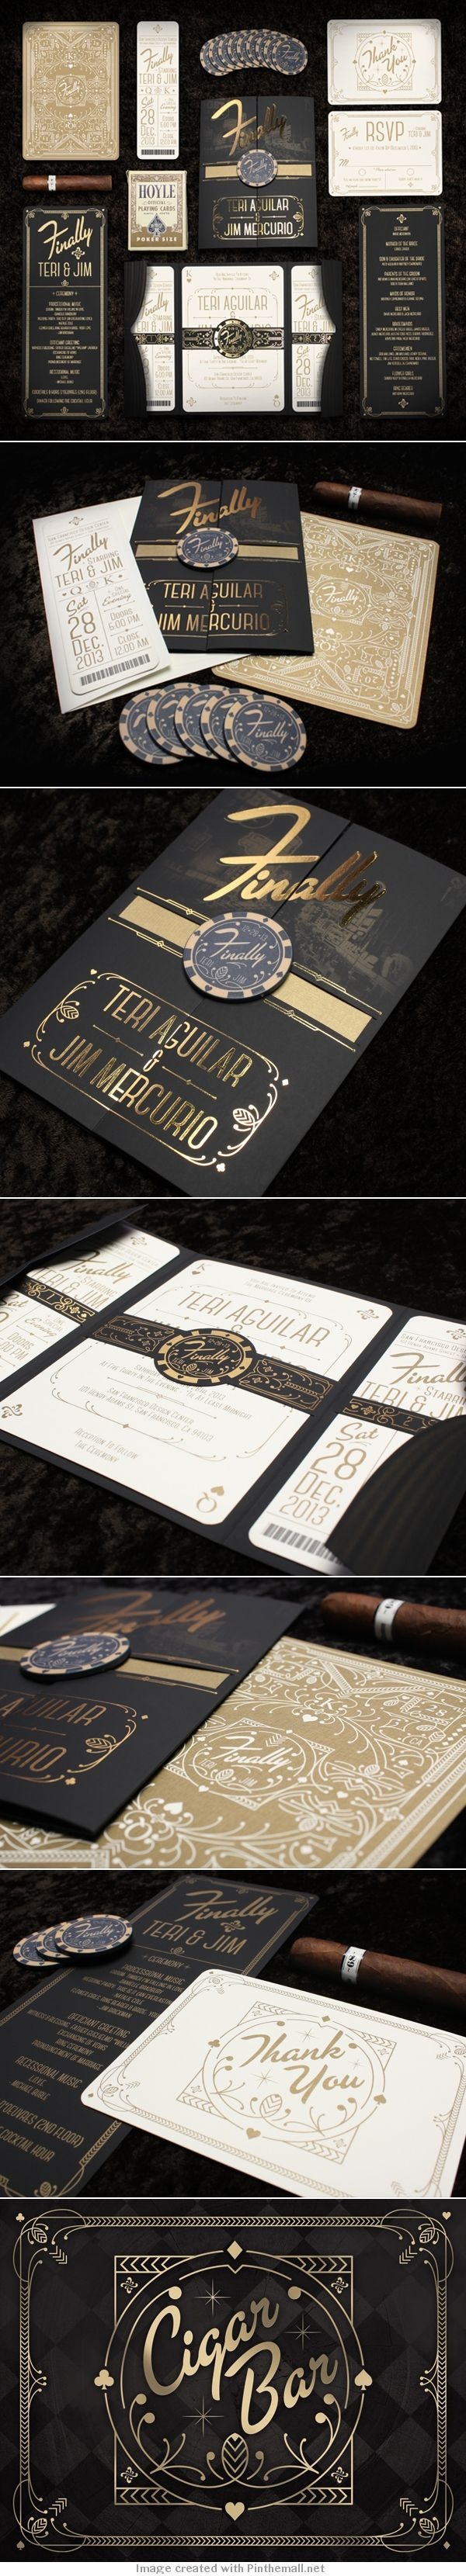 Mercurio Wedding Invitations - Anthony Gregg via Behance